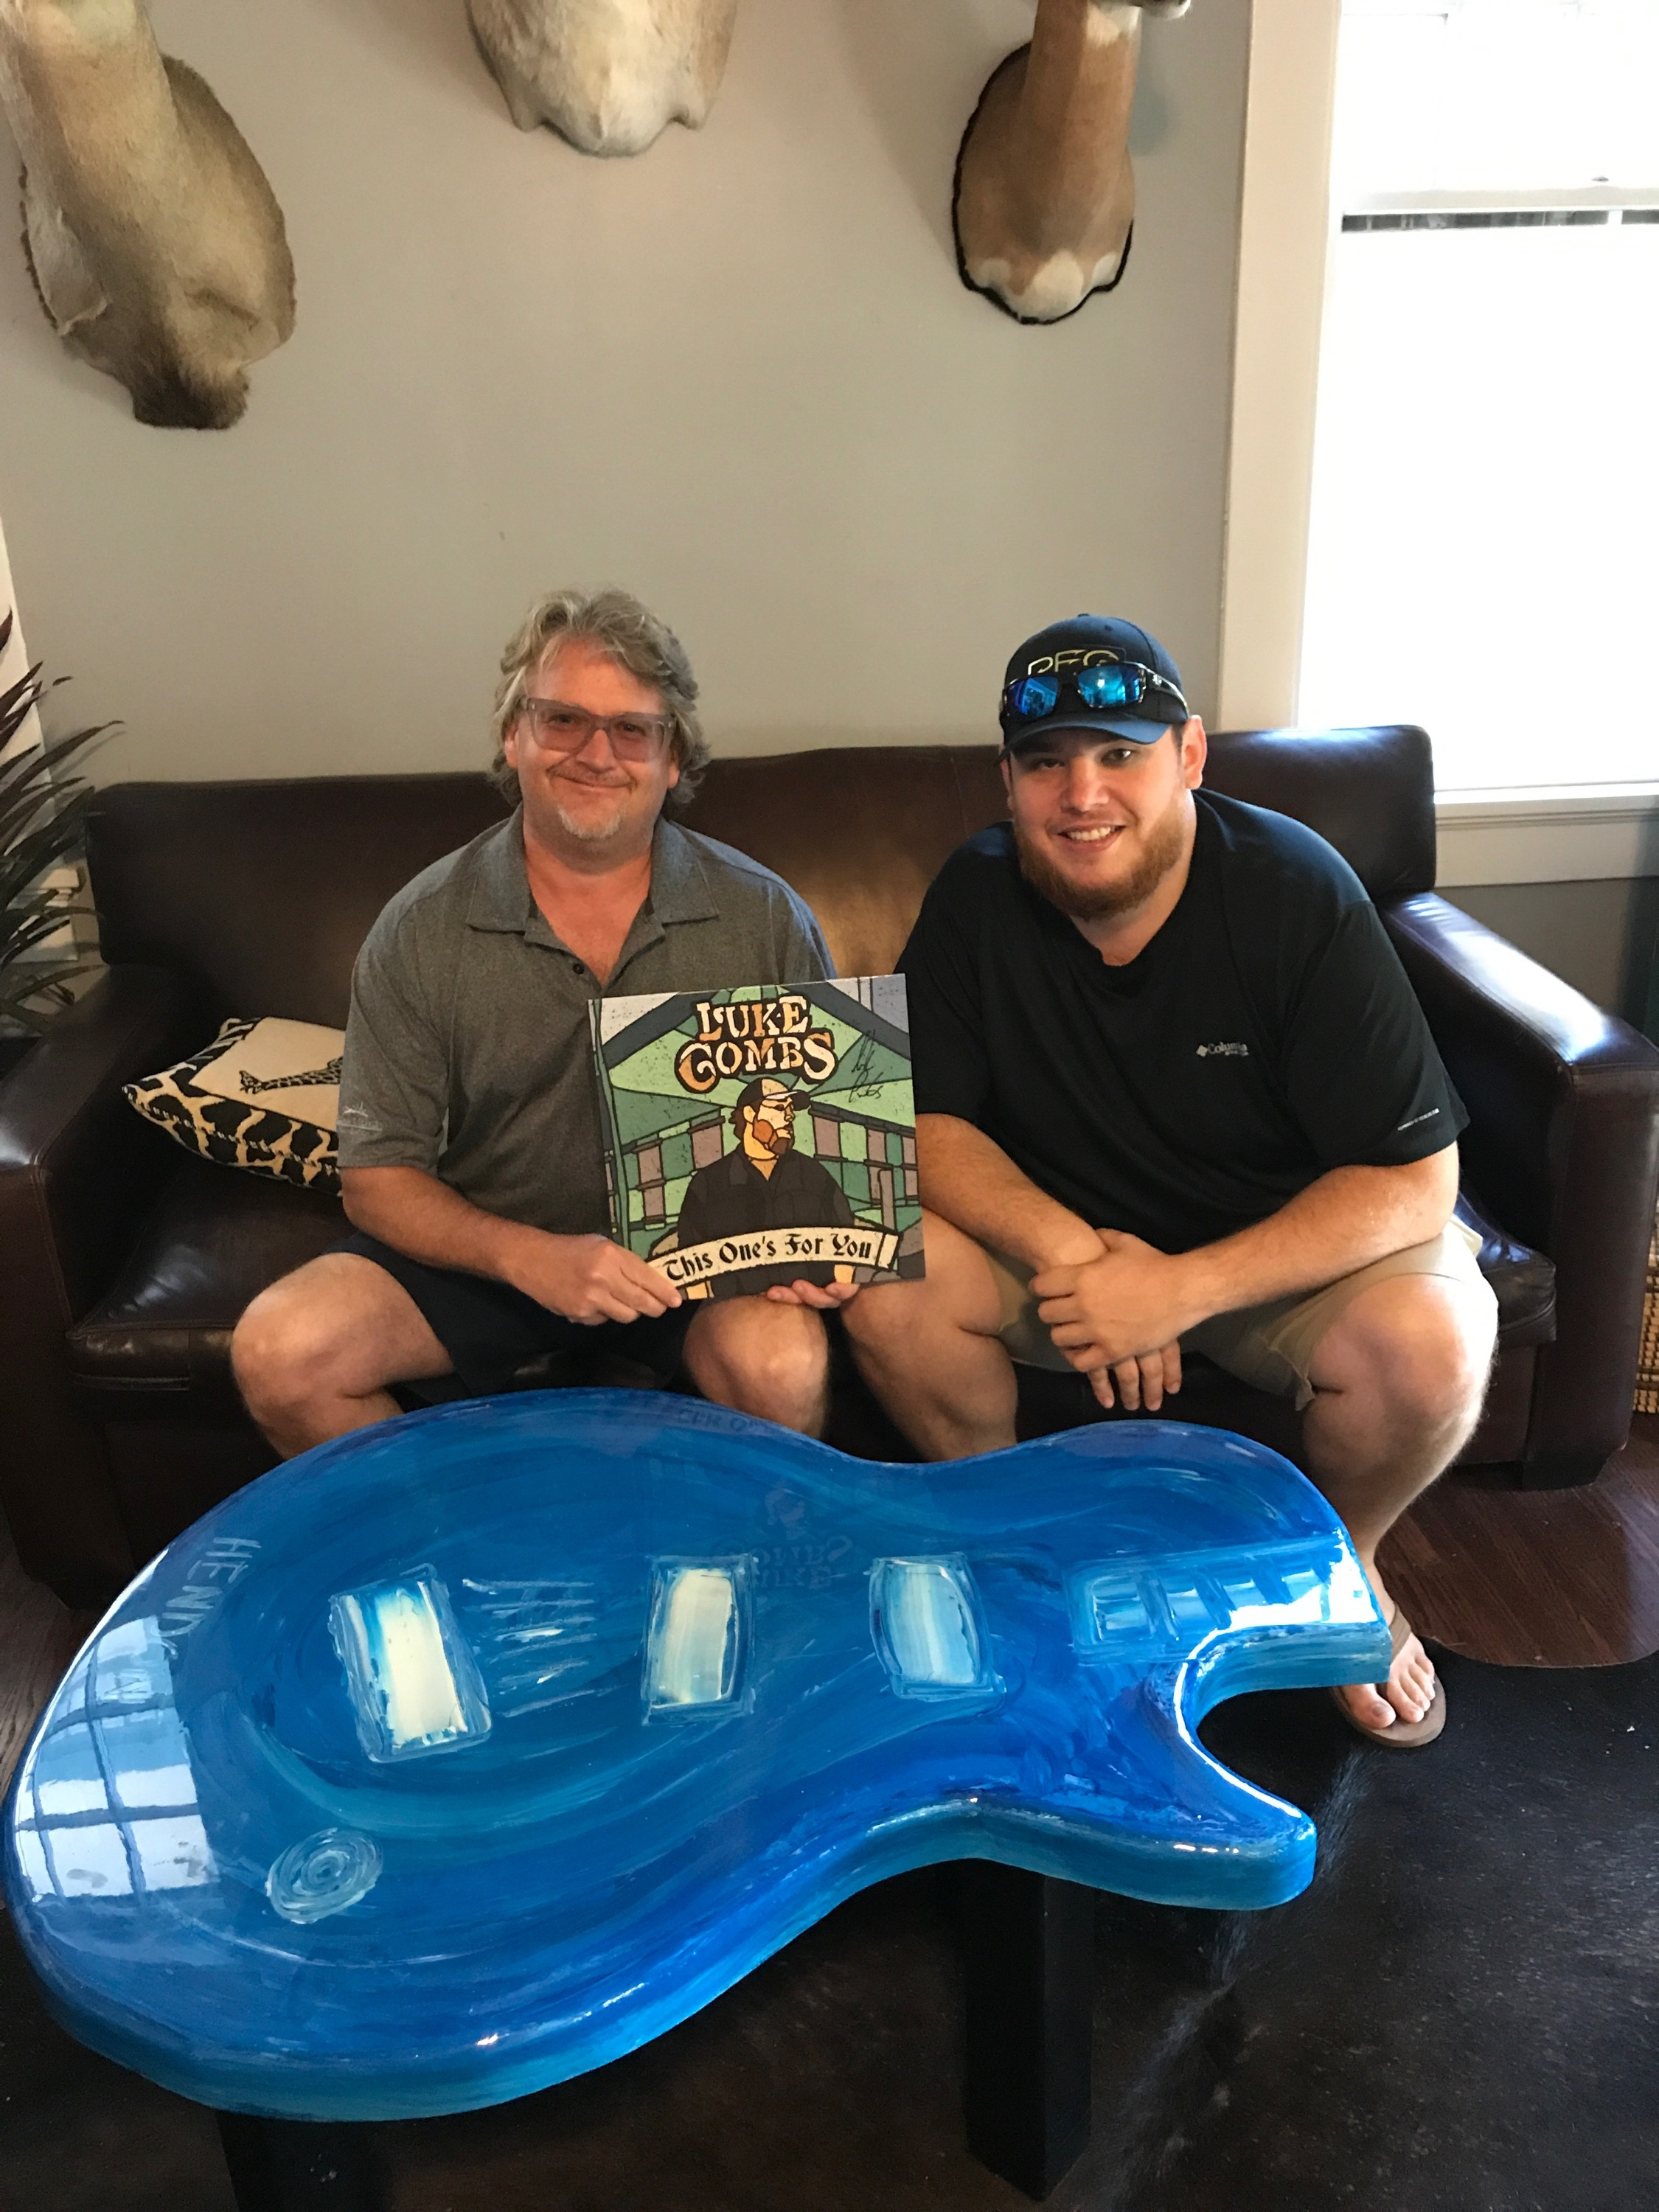 Luke Combs with his new Cobalt Hendon Table